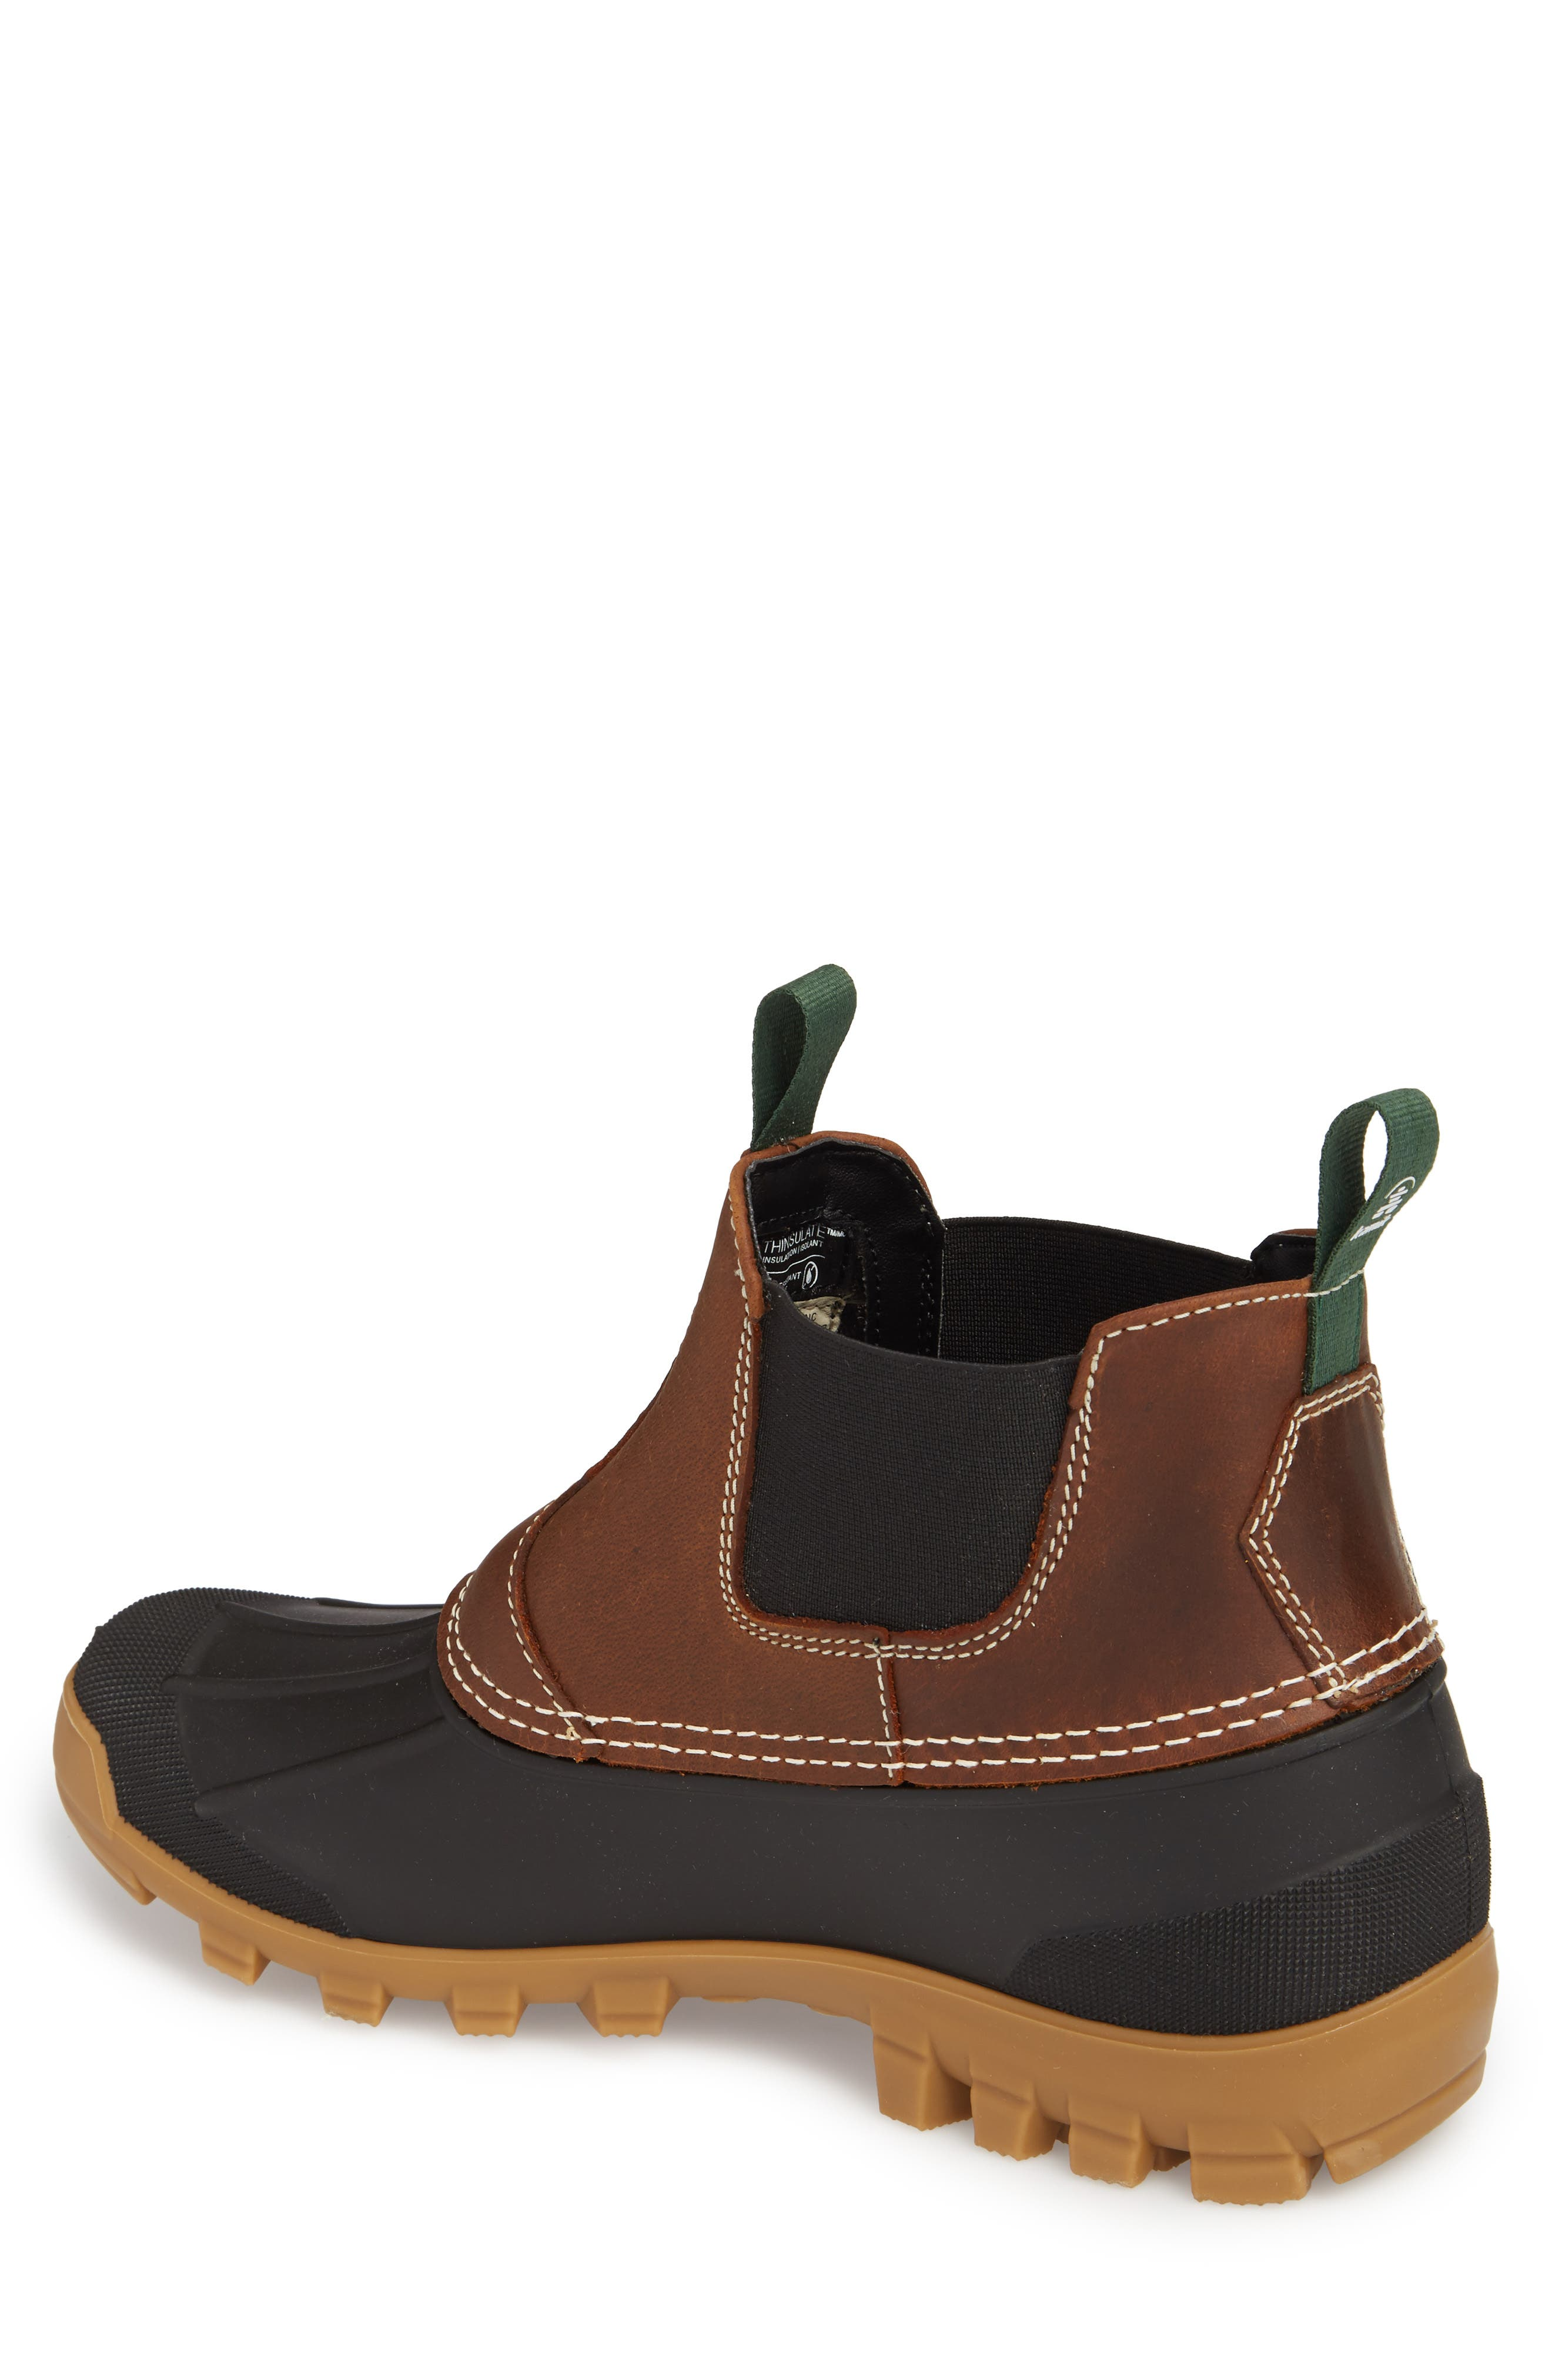 Yukon Chelsea Boot,                             Alternate thumbnail 2, color,                             DARK BROWN LEATHER